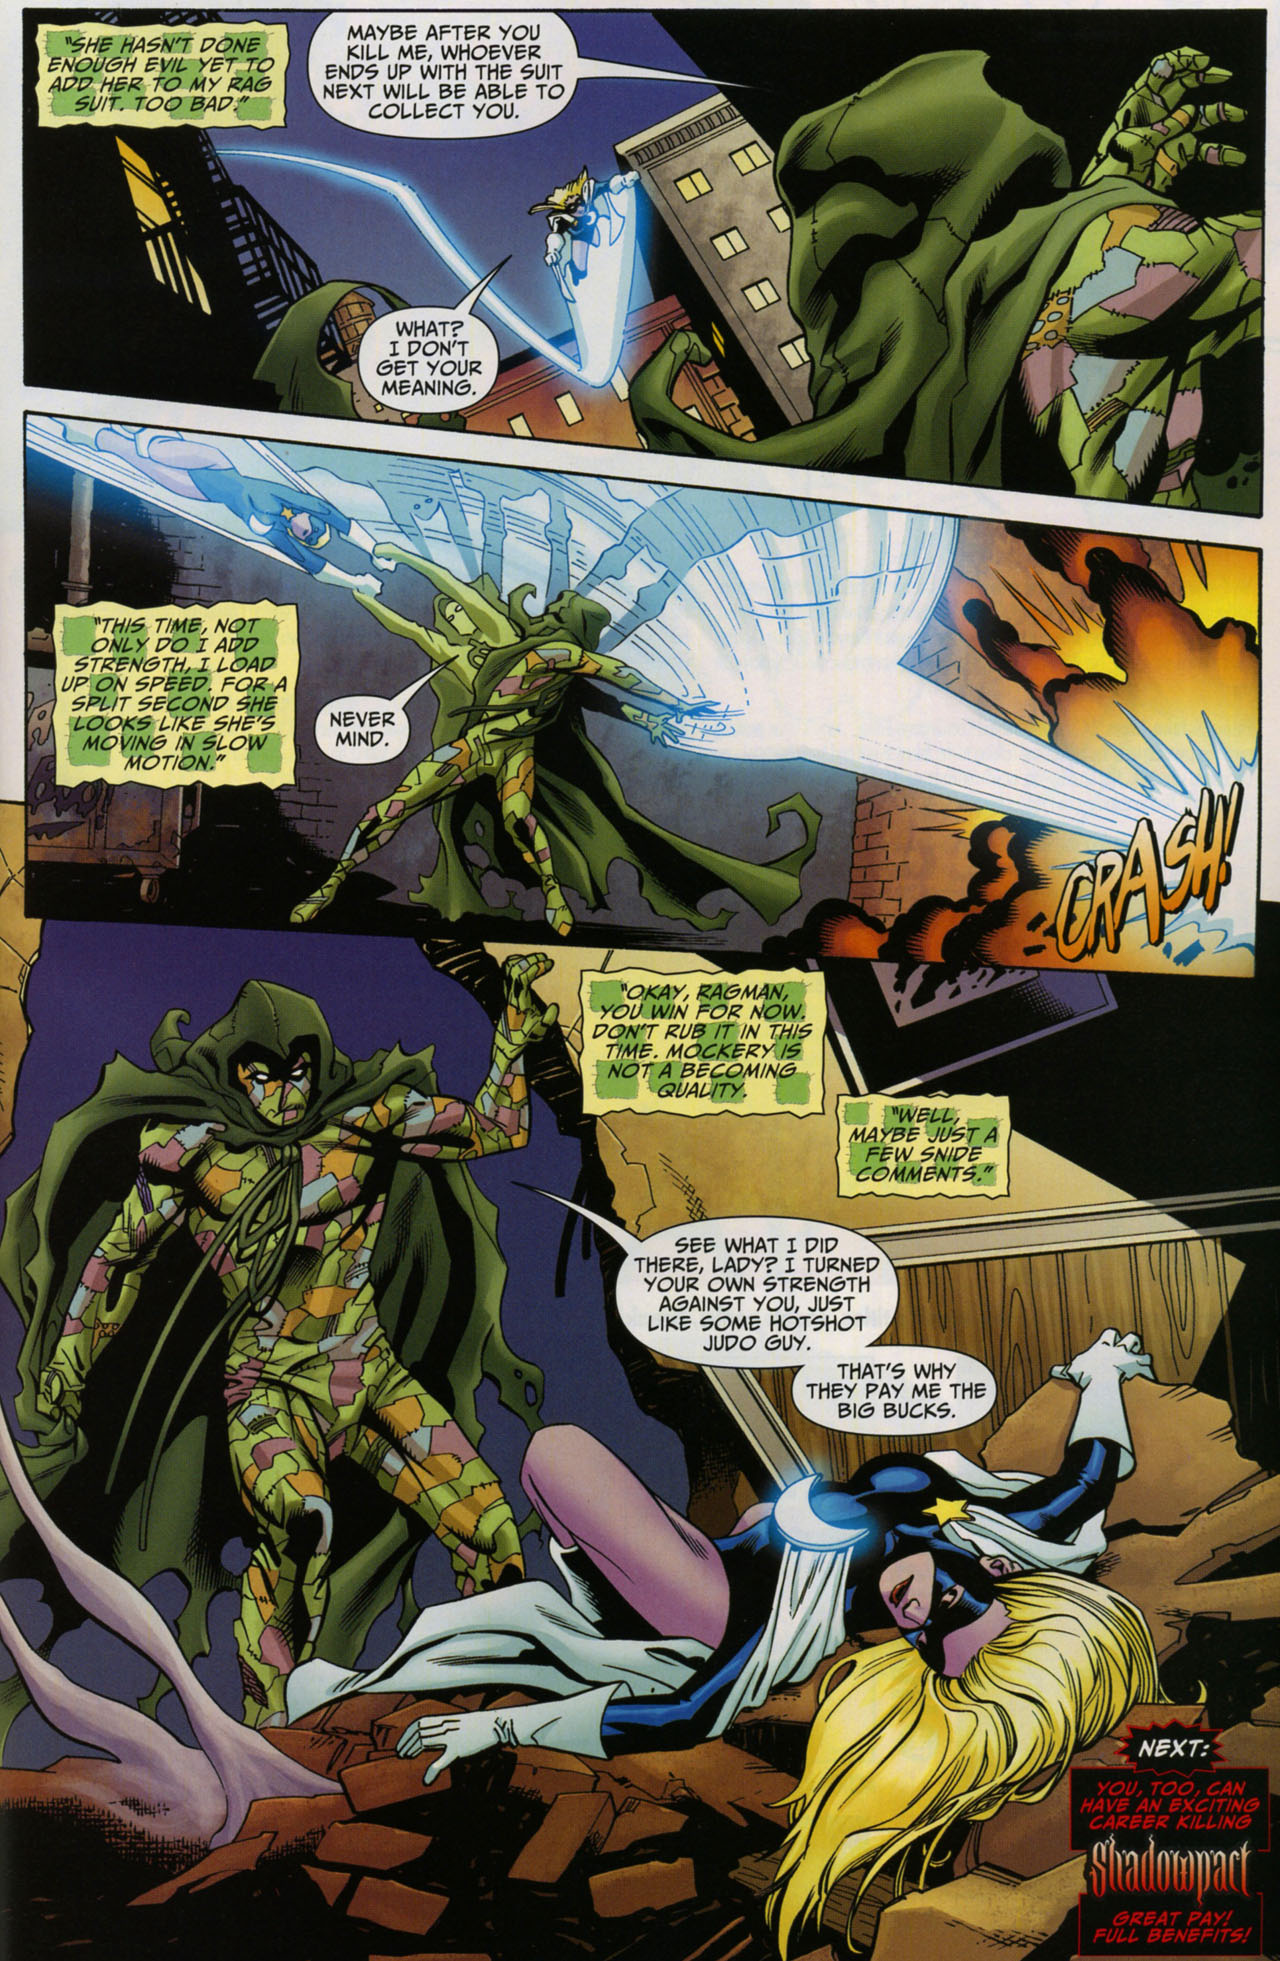 Read online Shadowpact comic -  Issue #5 - 22